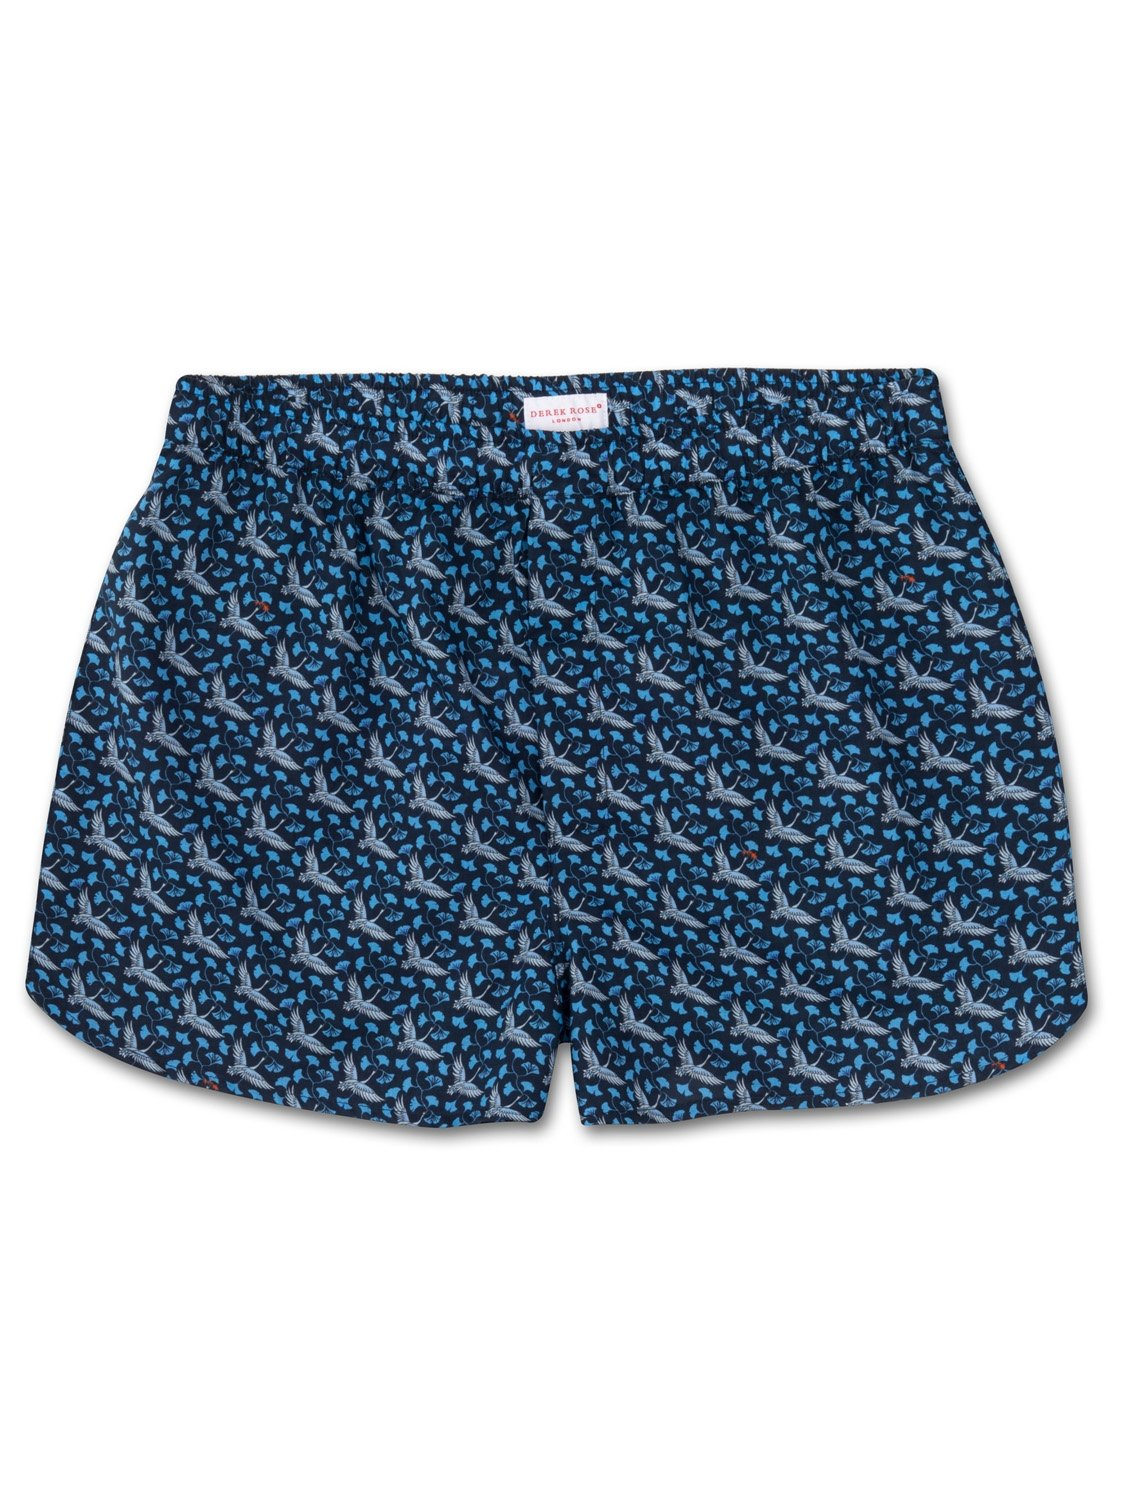 Men's Modern Fit Boxer Shorts Ledbury 15 Cotton Batiste Navy